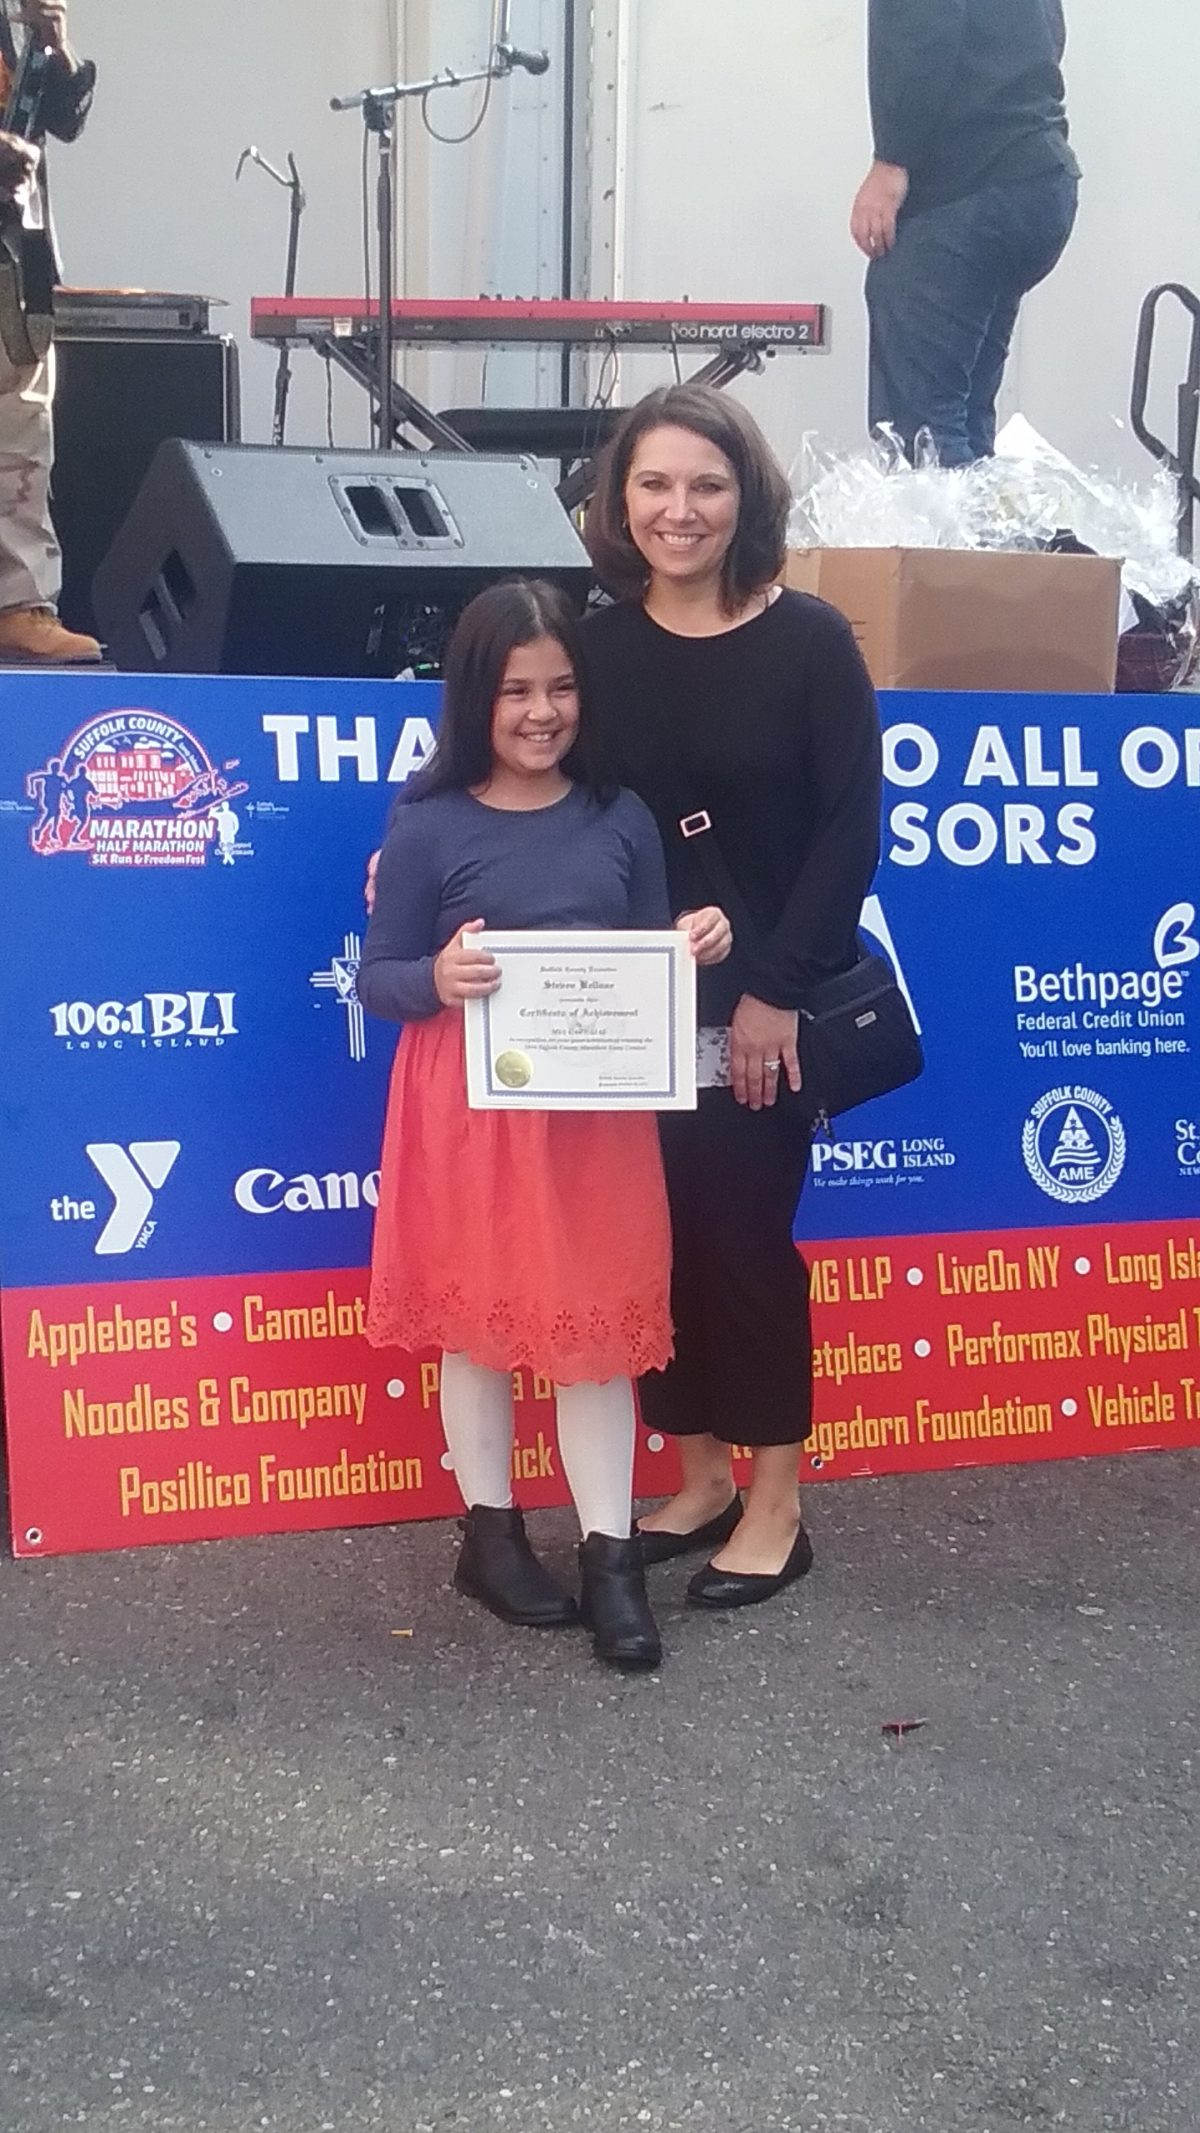 Laddie A. Decker Sound Beach School Celebrates Suffolk County Marathon Essay Contest Winner